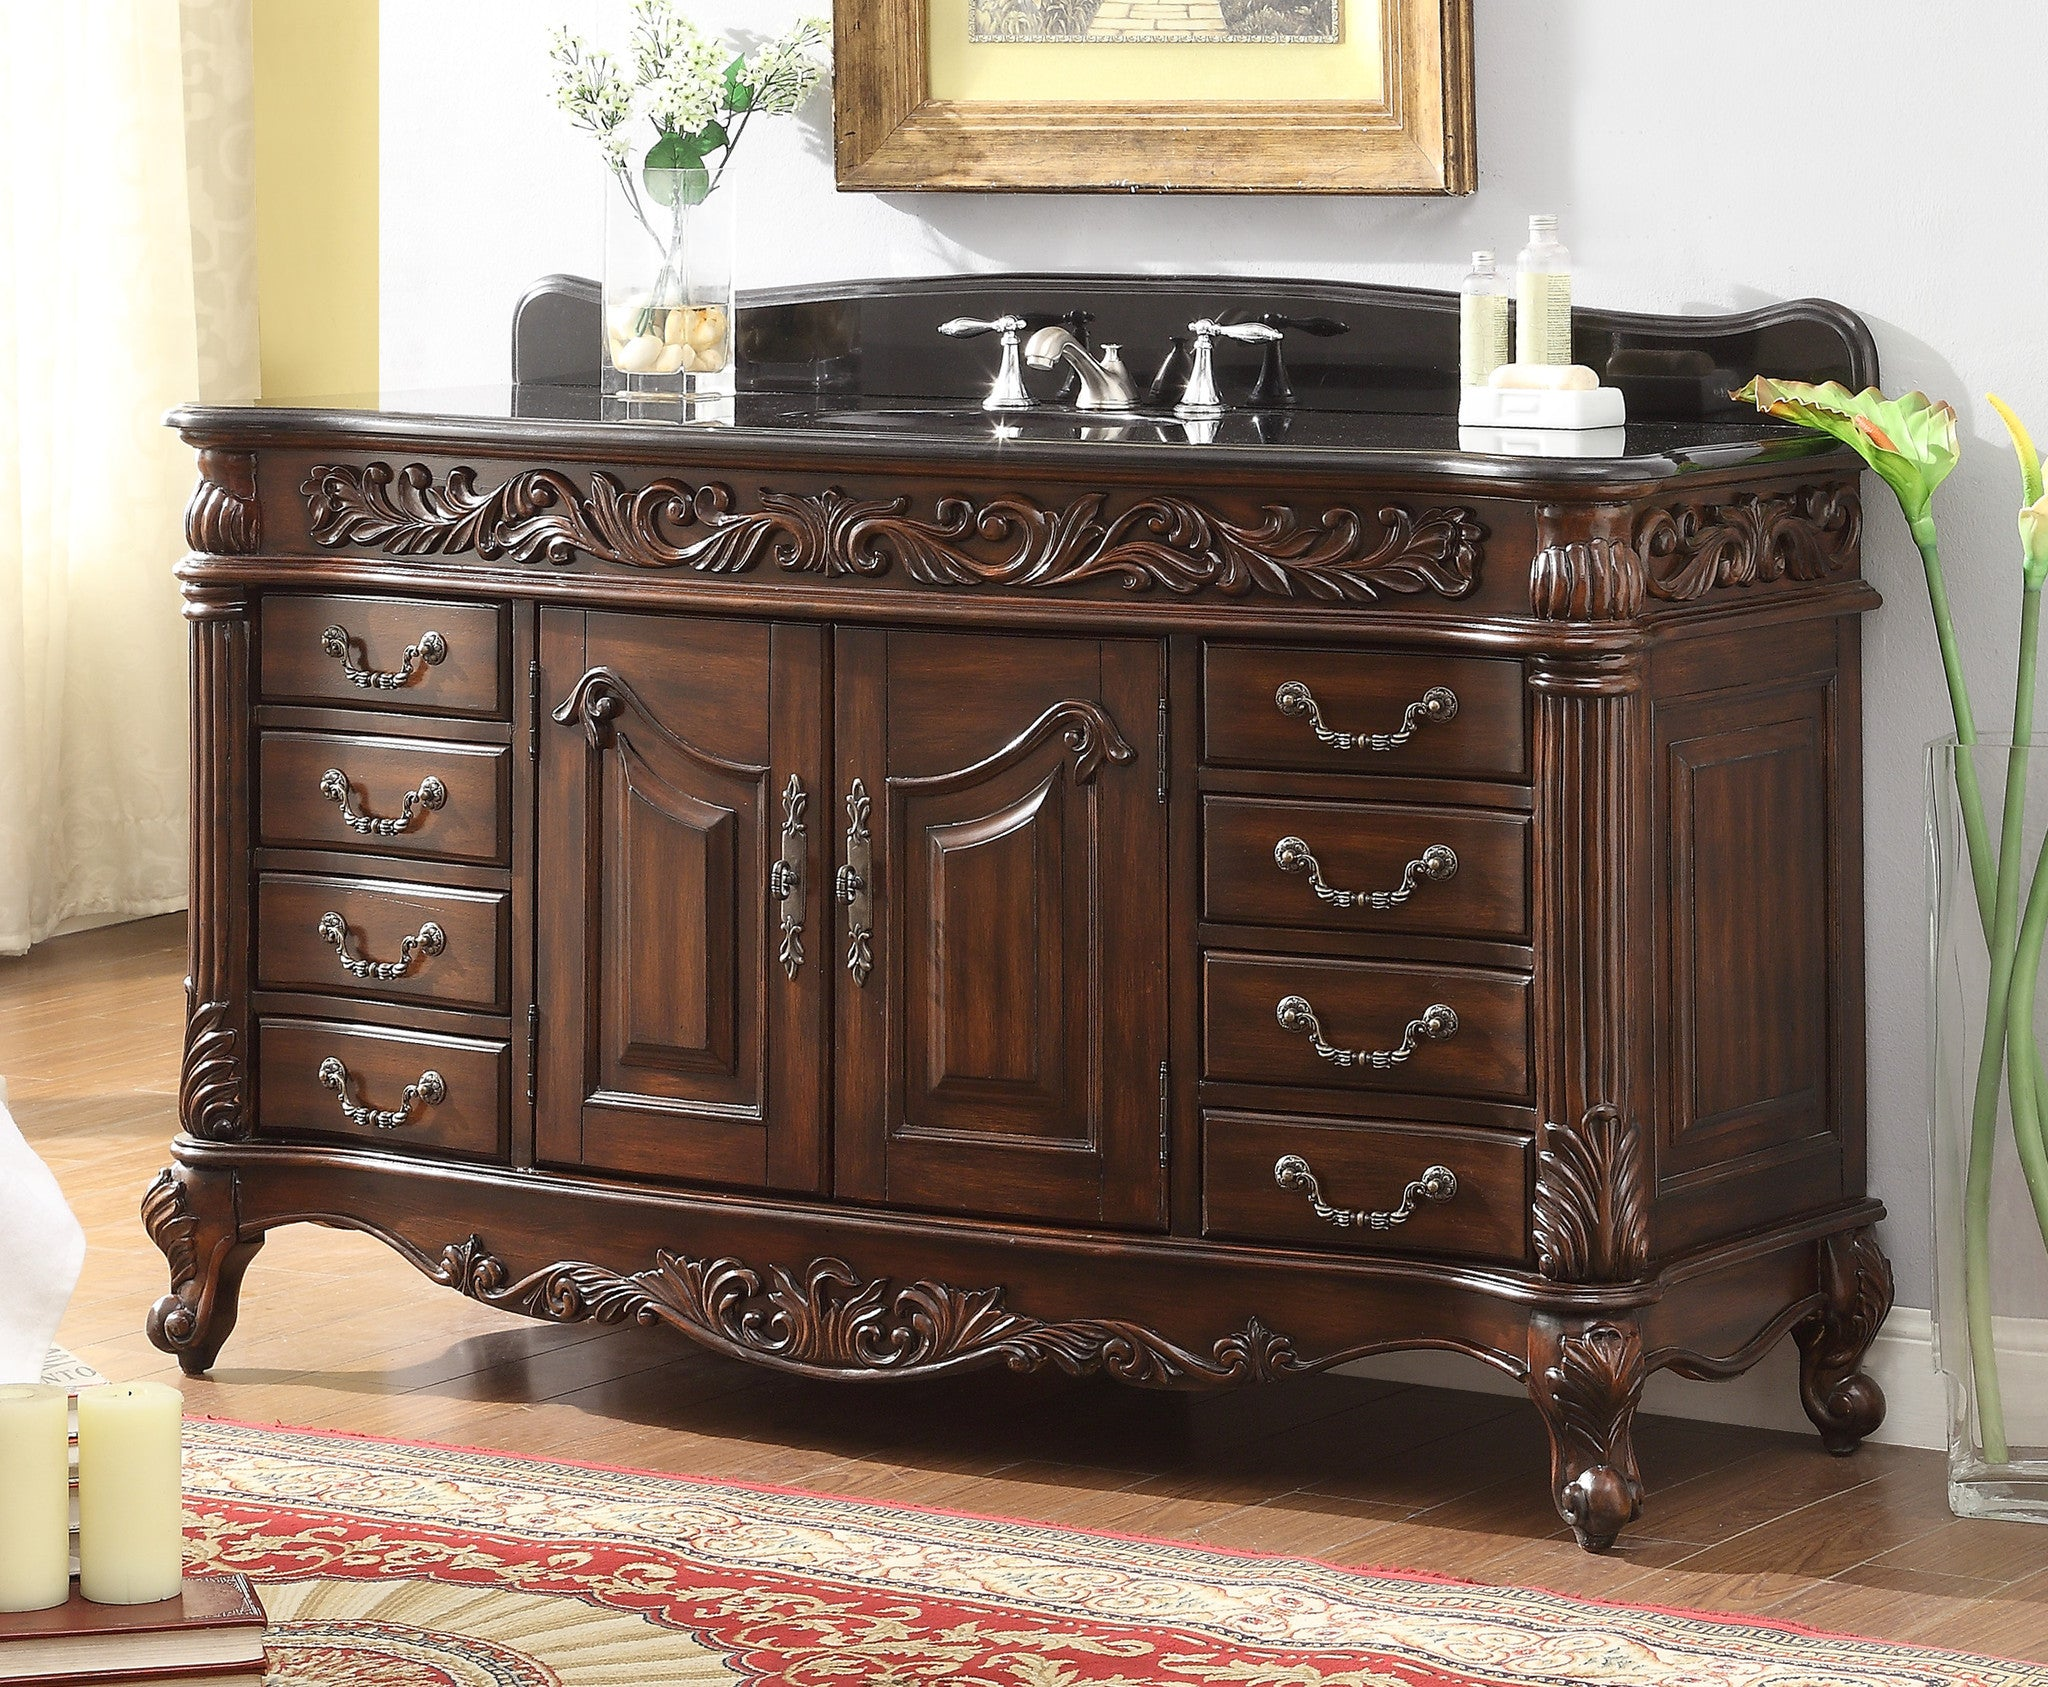 60 benton collection old timer classic all wood black granite top